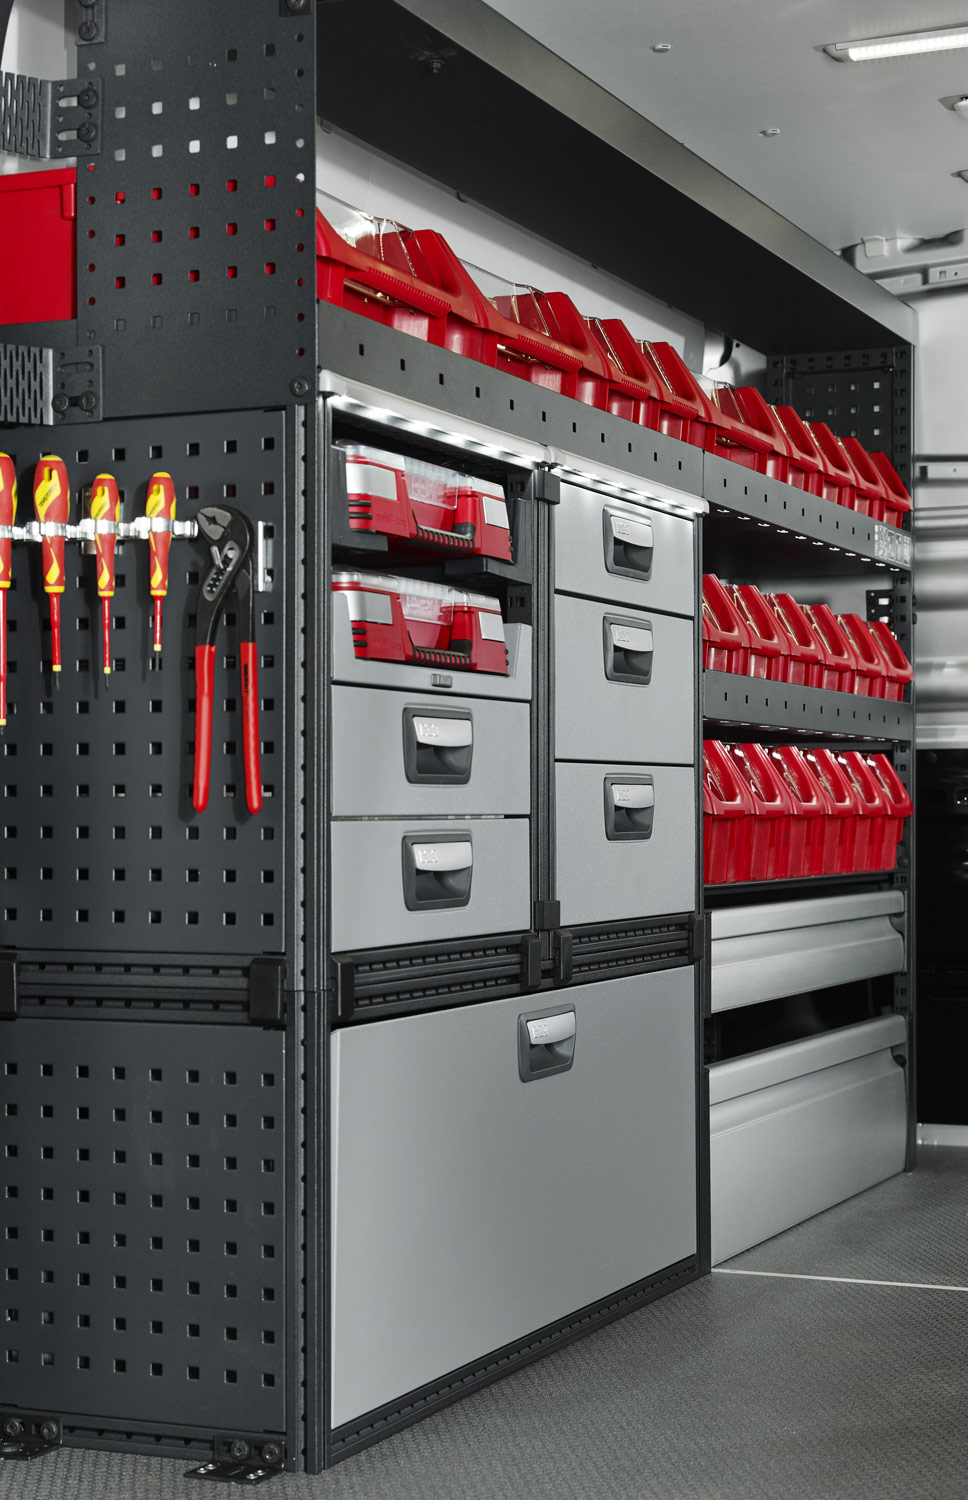 Example of modul-system van racking with drawers, storage boxes and shelving